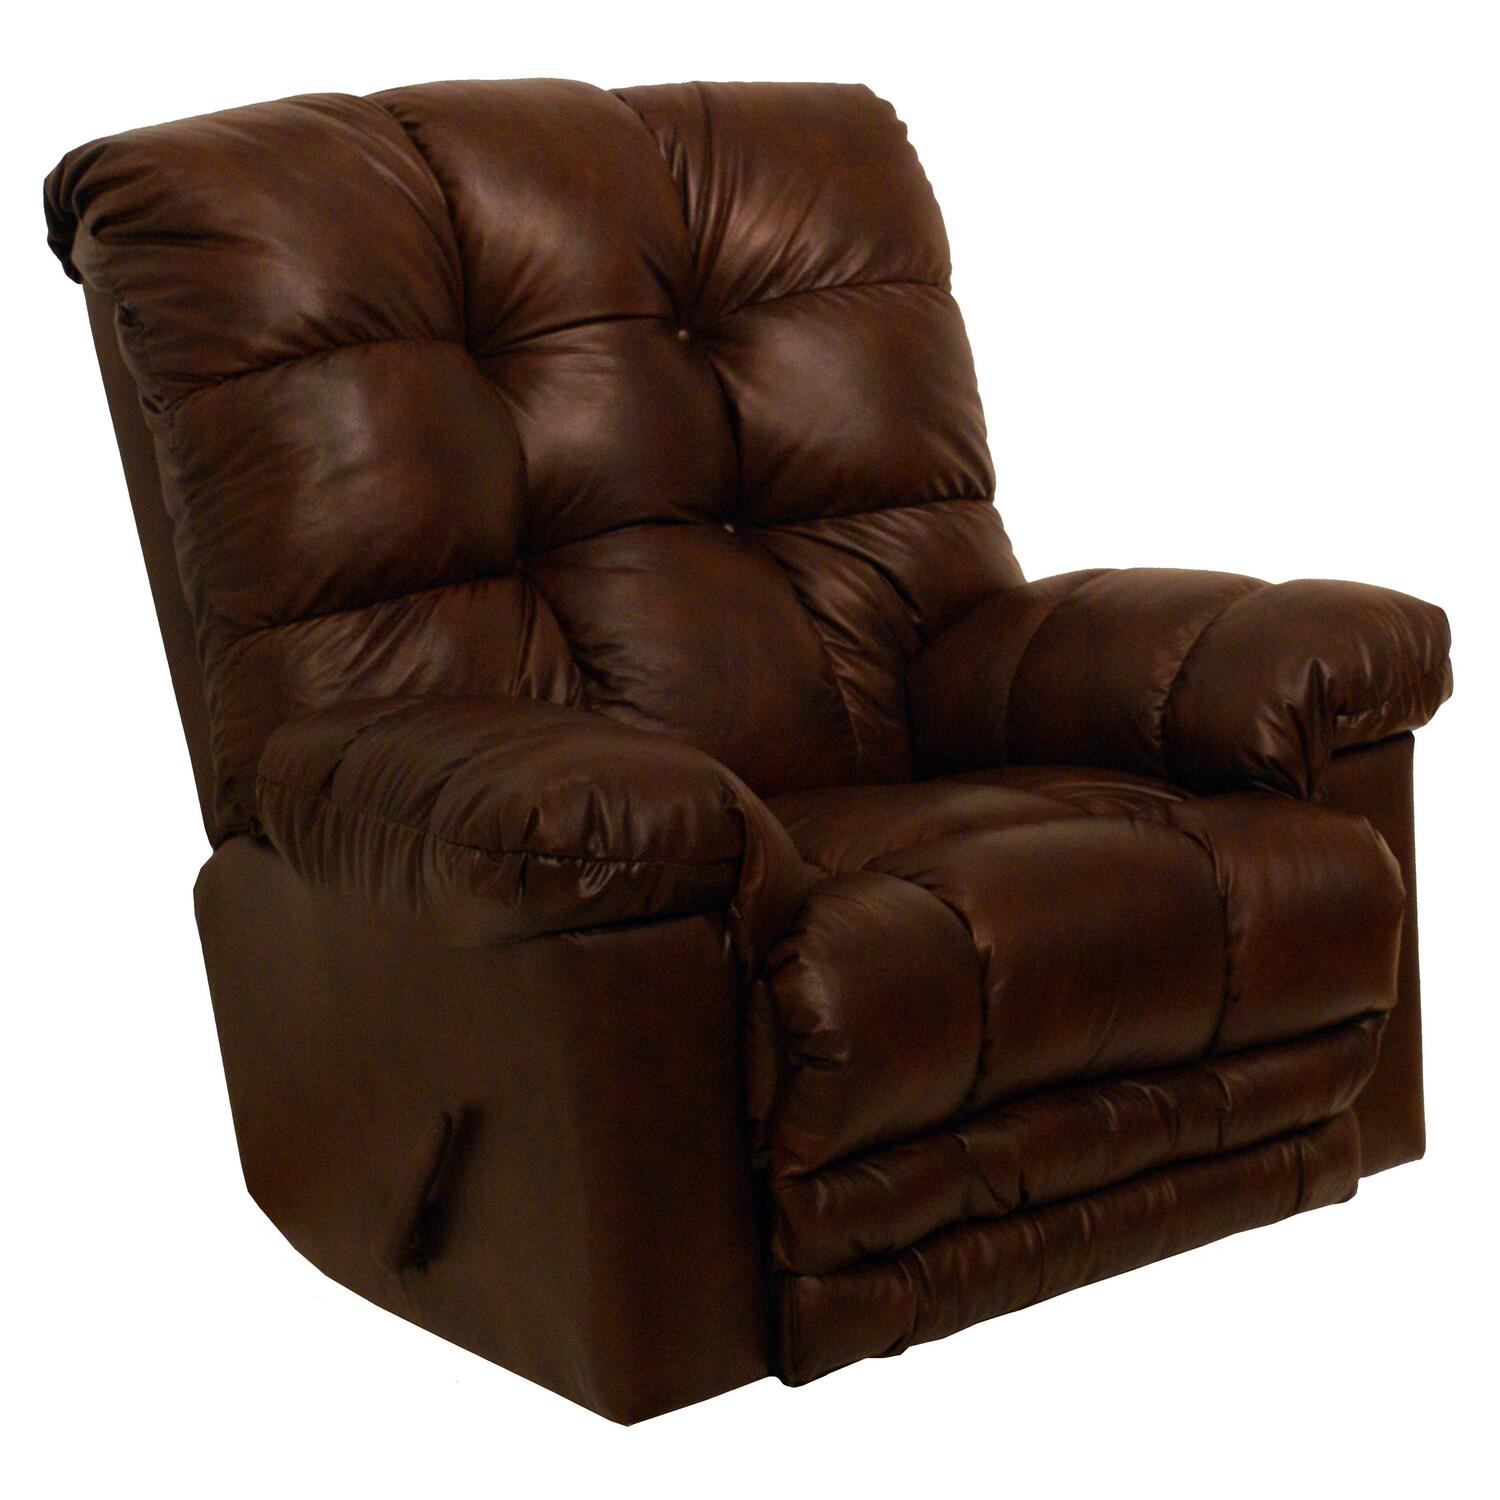 Catnapper cloud ten leather rocker recliner by oj commerce for Catnapper cloud nine chaise recliner